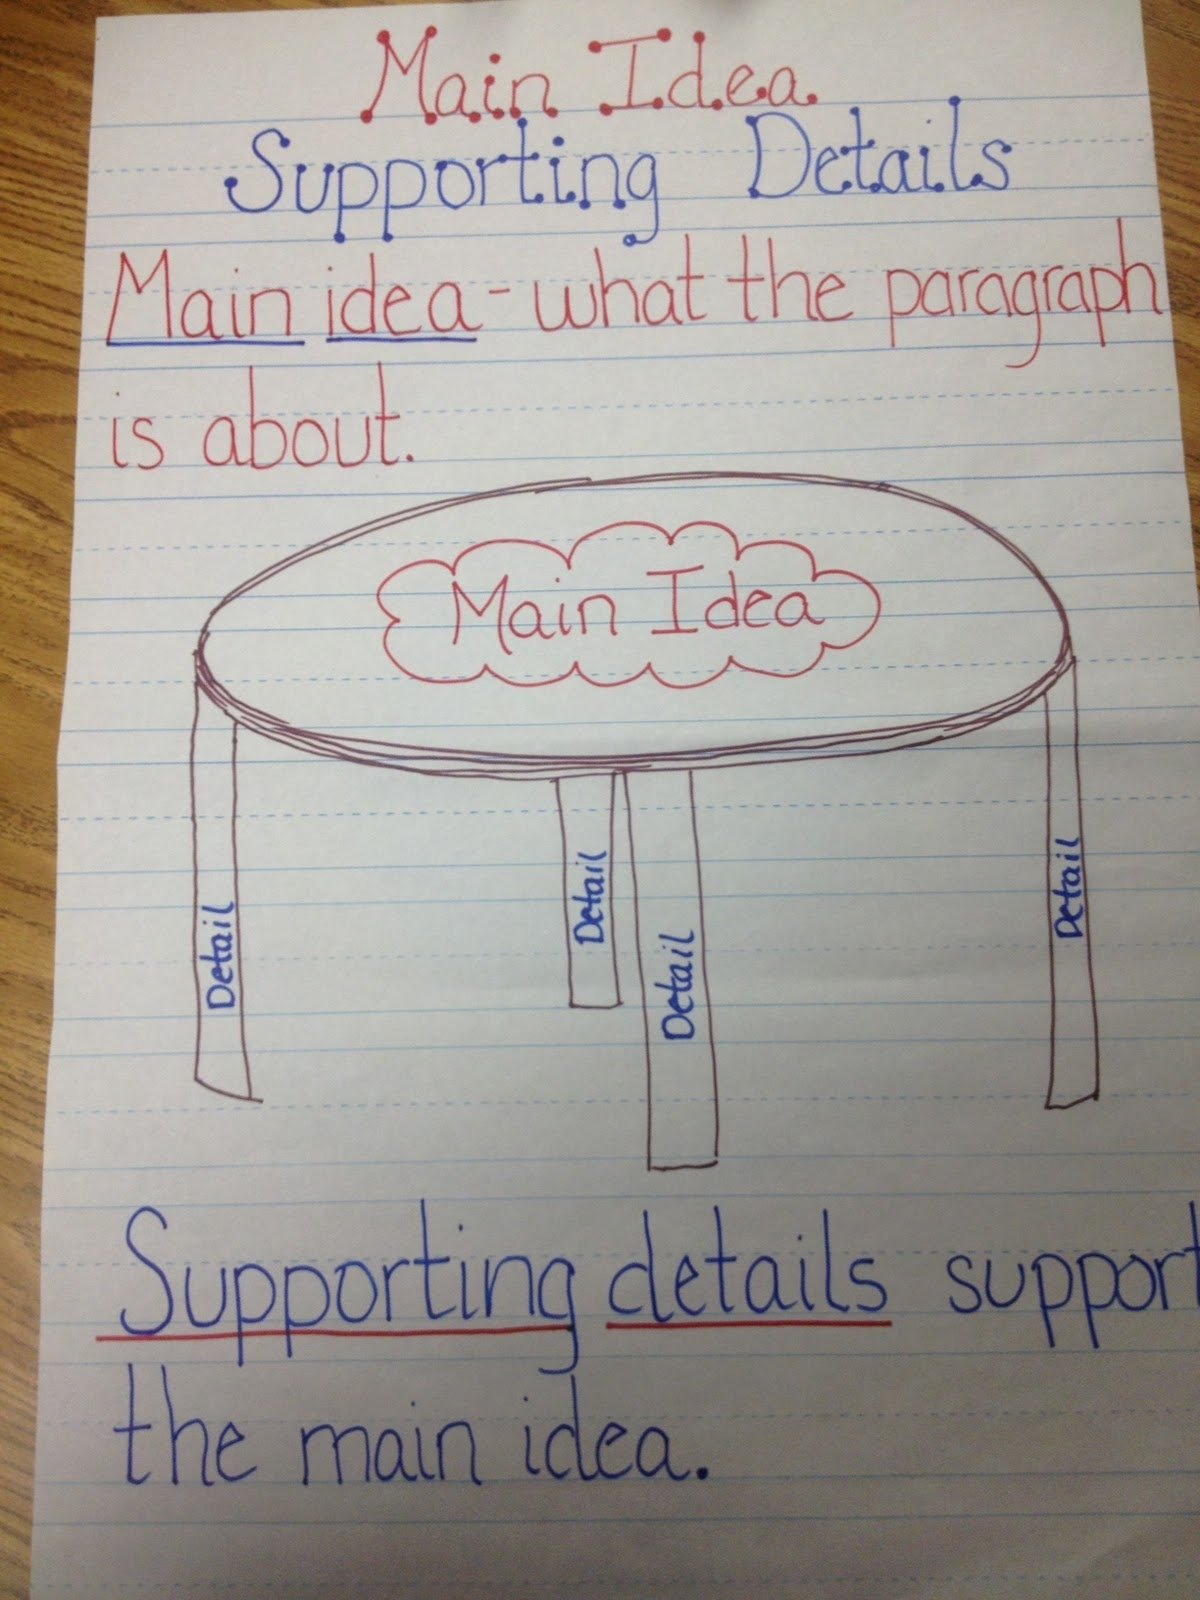 10 Lovable Main Idea Practice 4Th Grade main idea mrs warners 4th grade classroom 3 2020